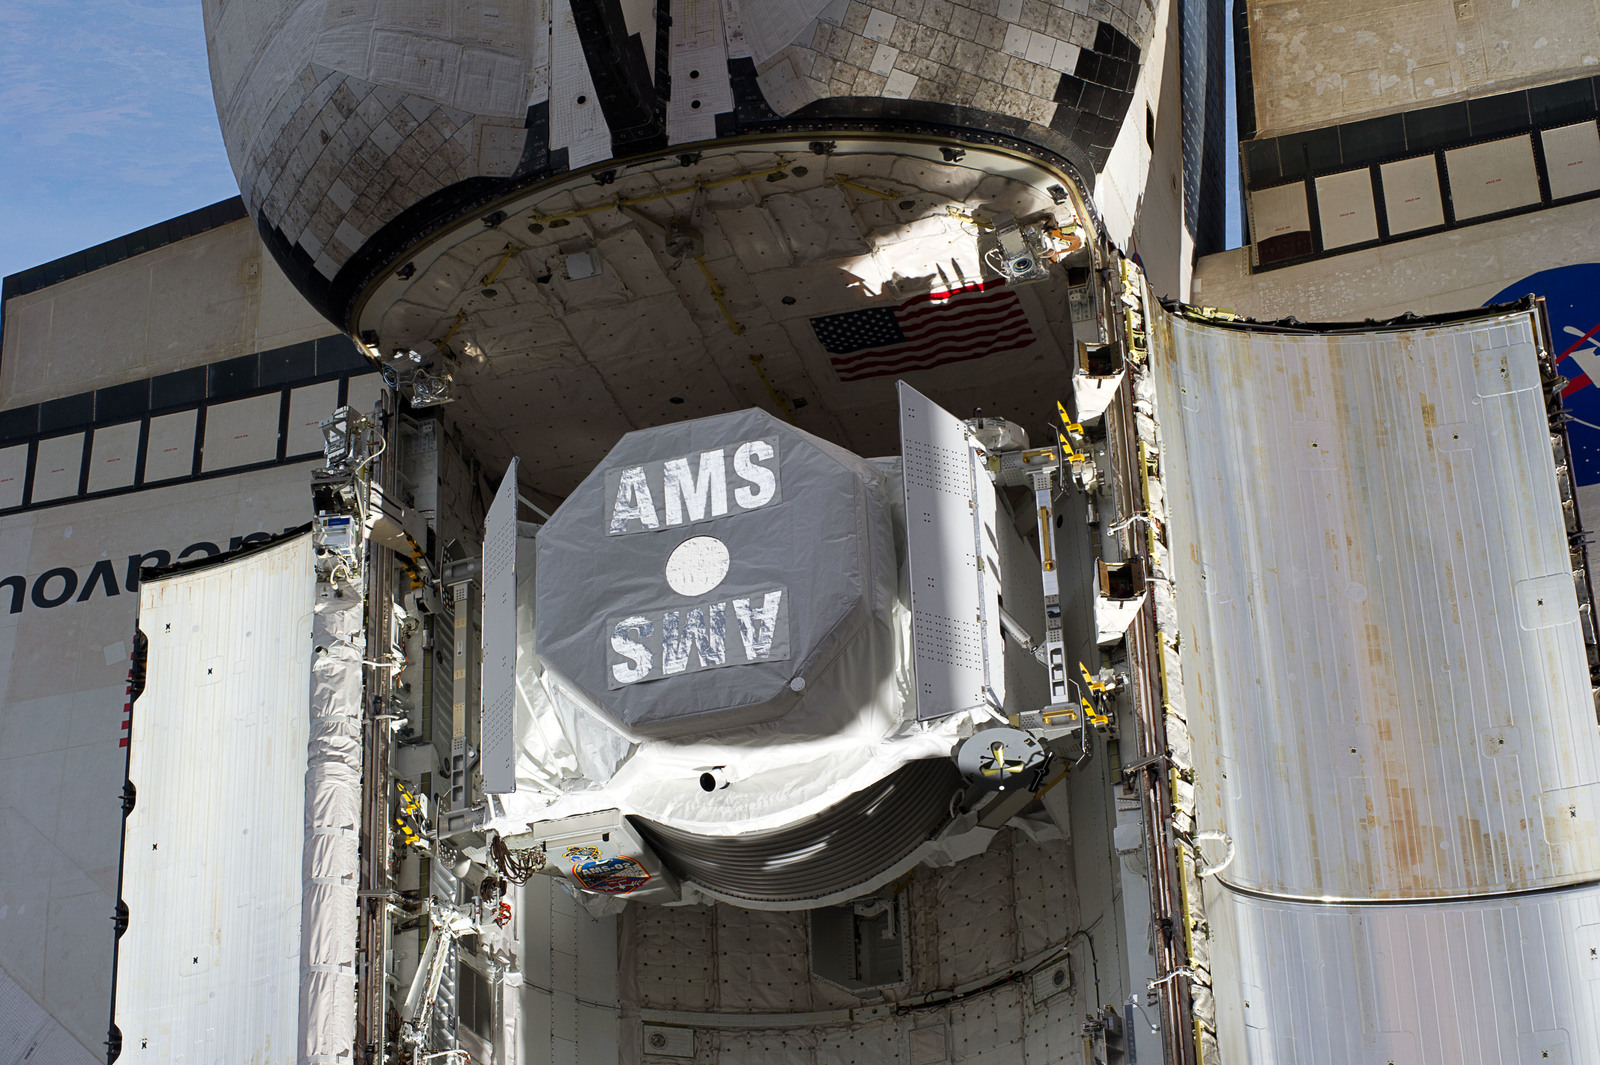 S134E007371 - STS-134 - View of AMS-2 stowed in the Endeavour Payload Bay